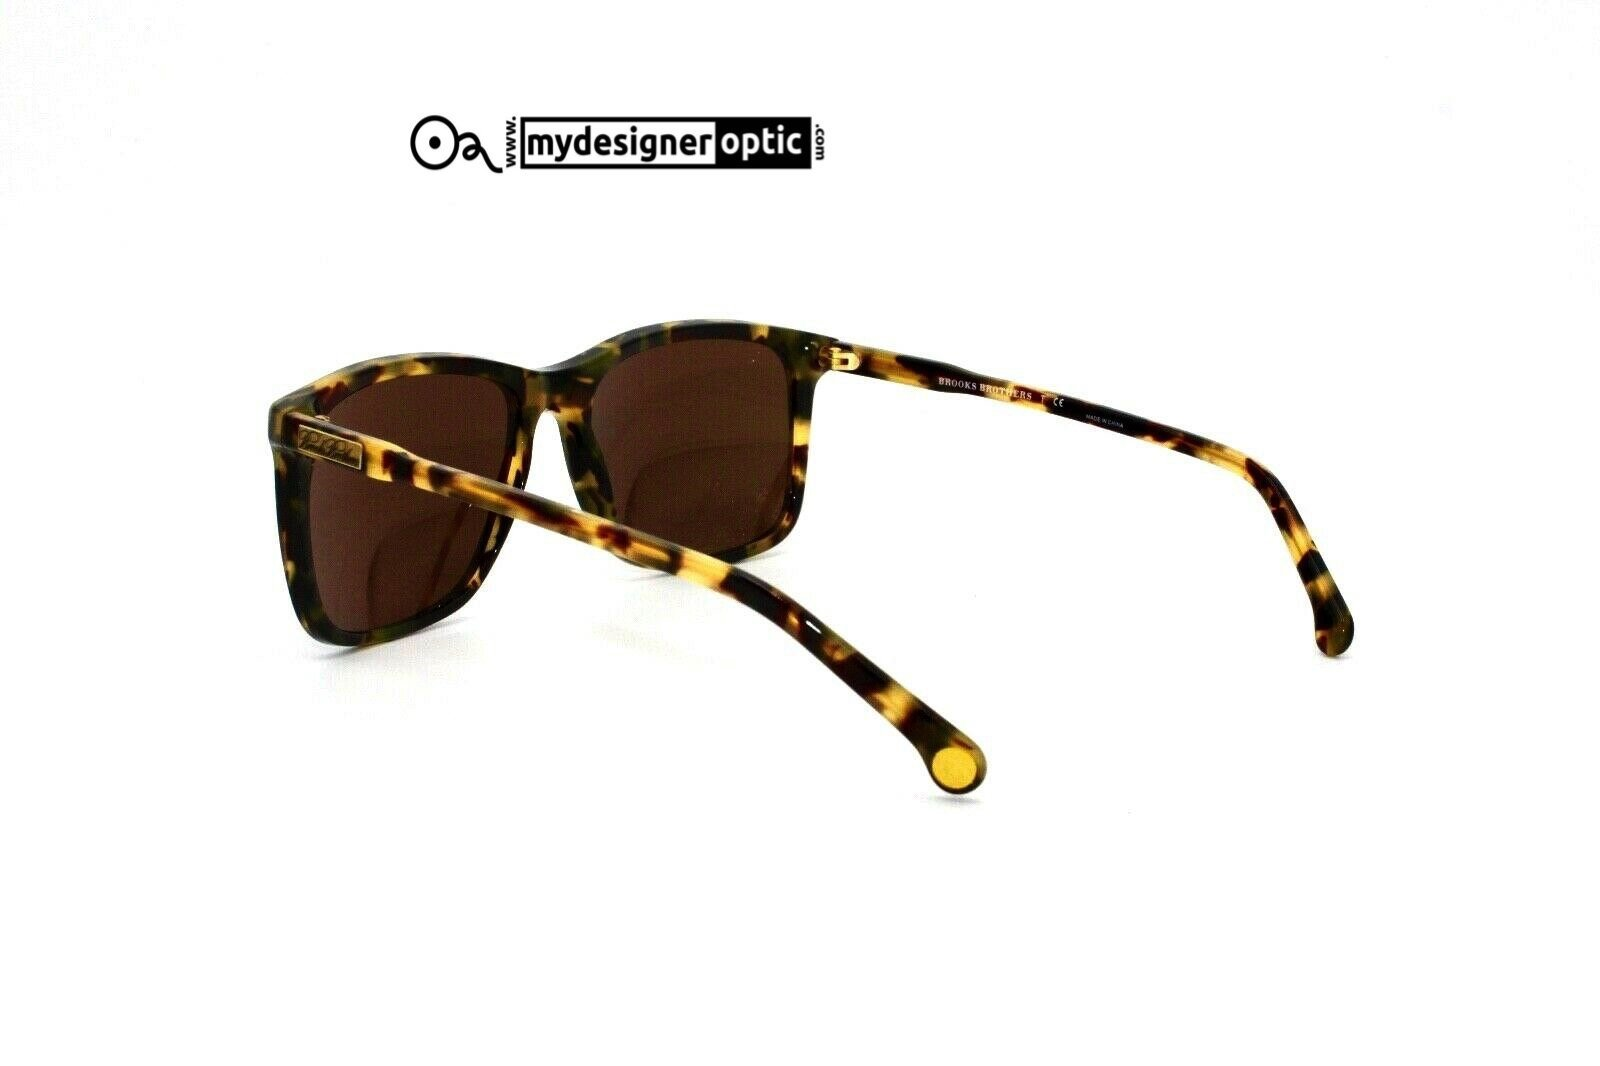 Brook Brothers Sunglasses B.B. 5018 605273 58-18-140 3N - Mydesigneroptic